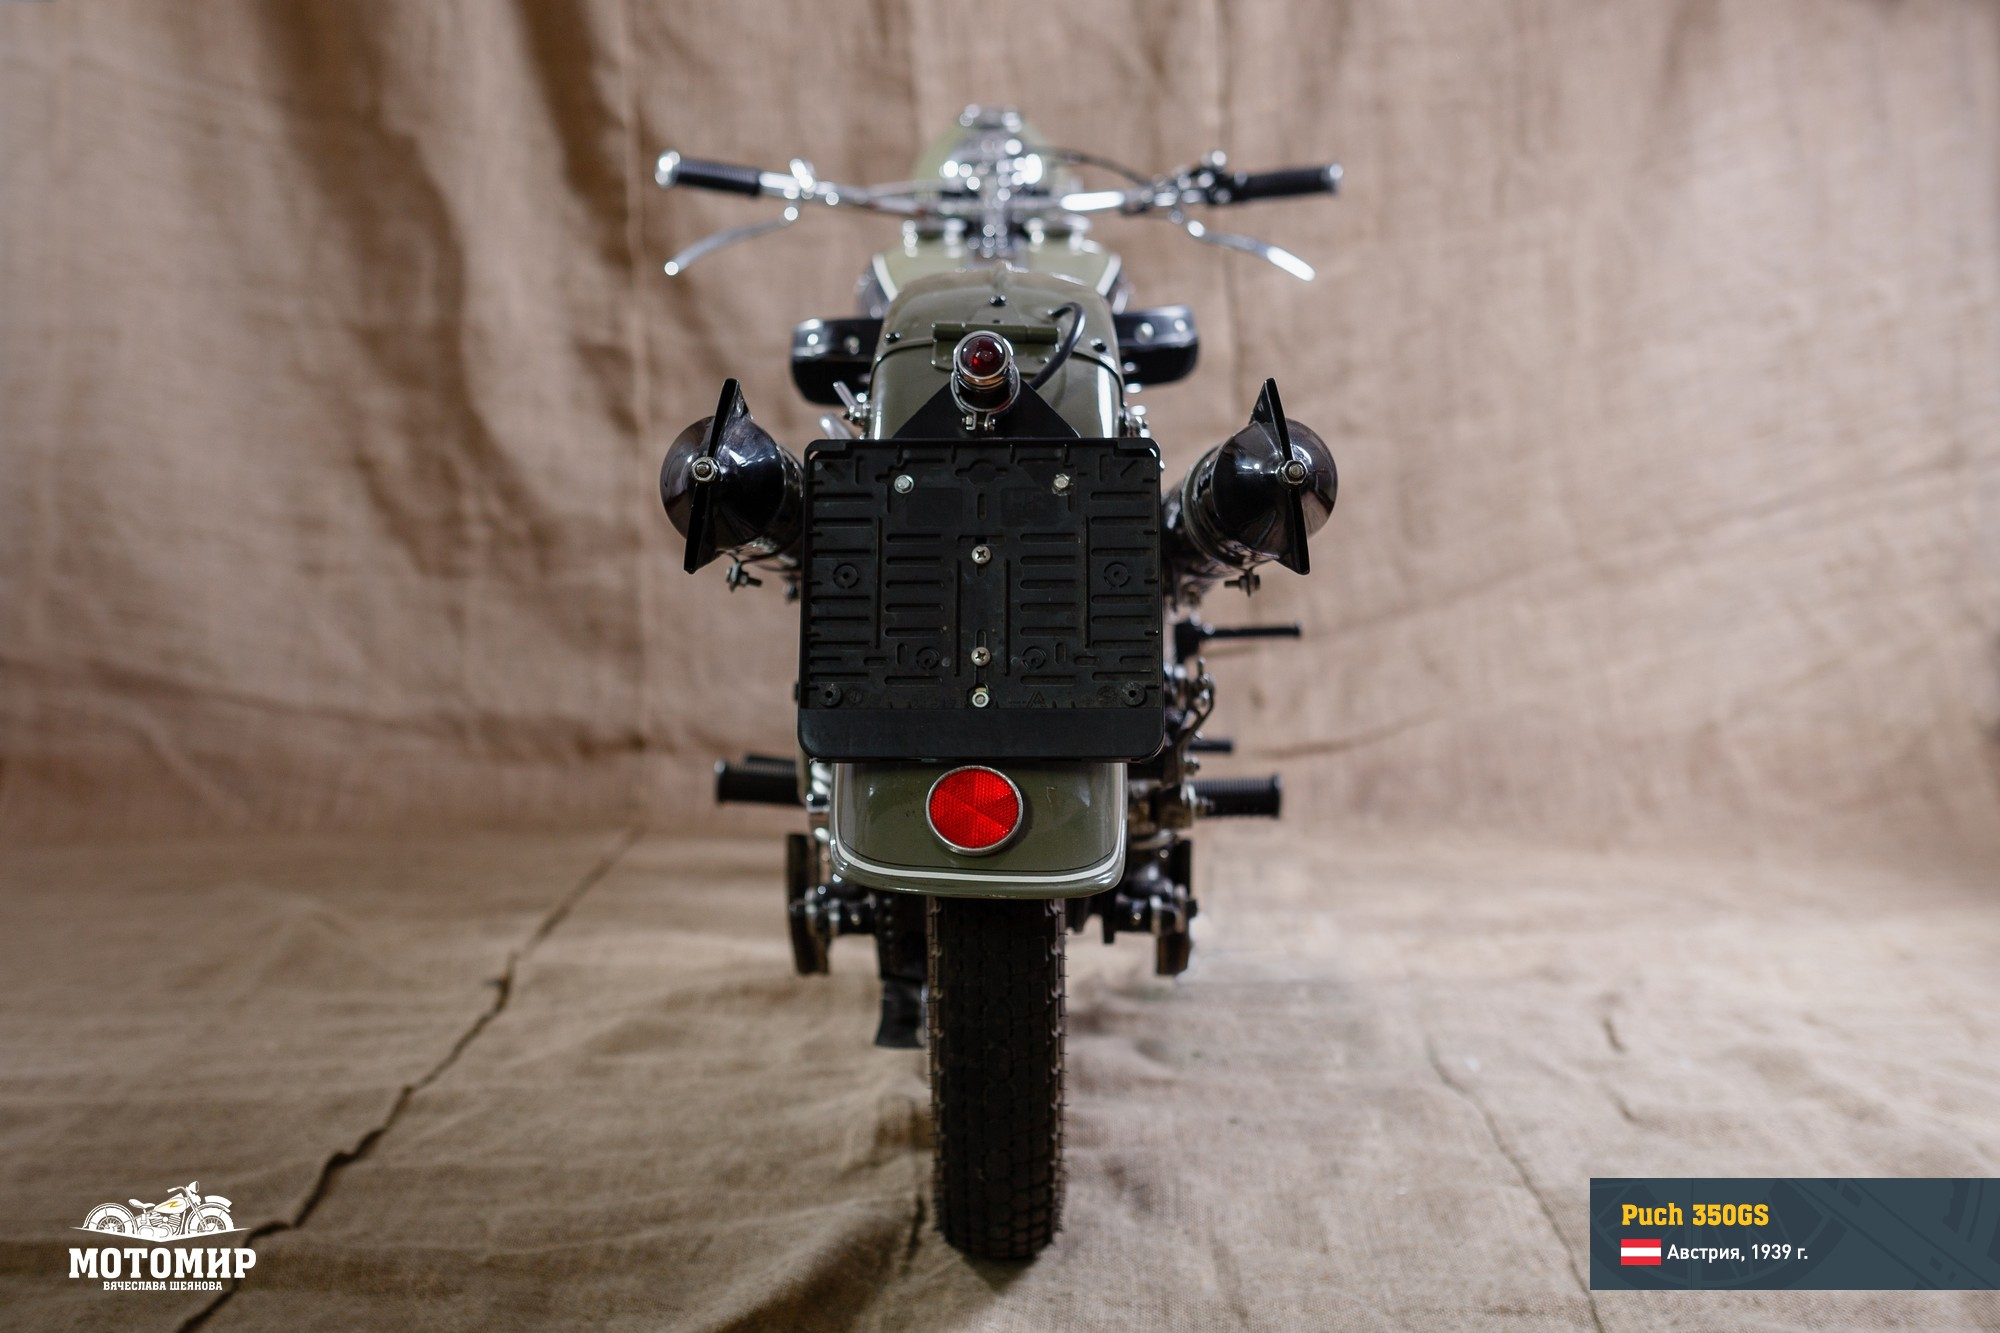 puch-350gs-201601-web-03